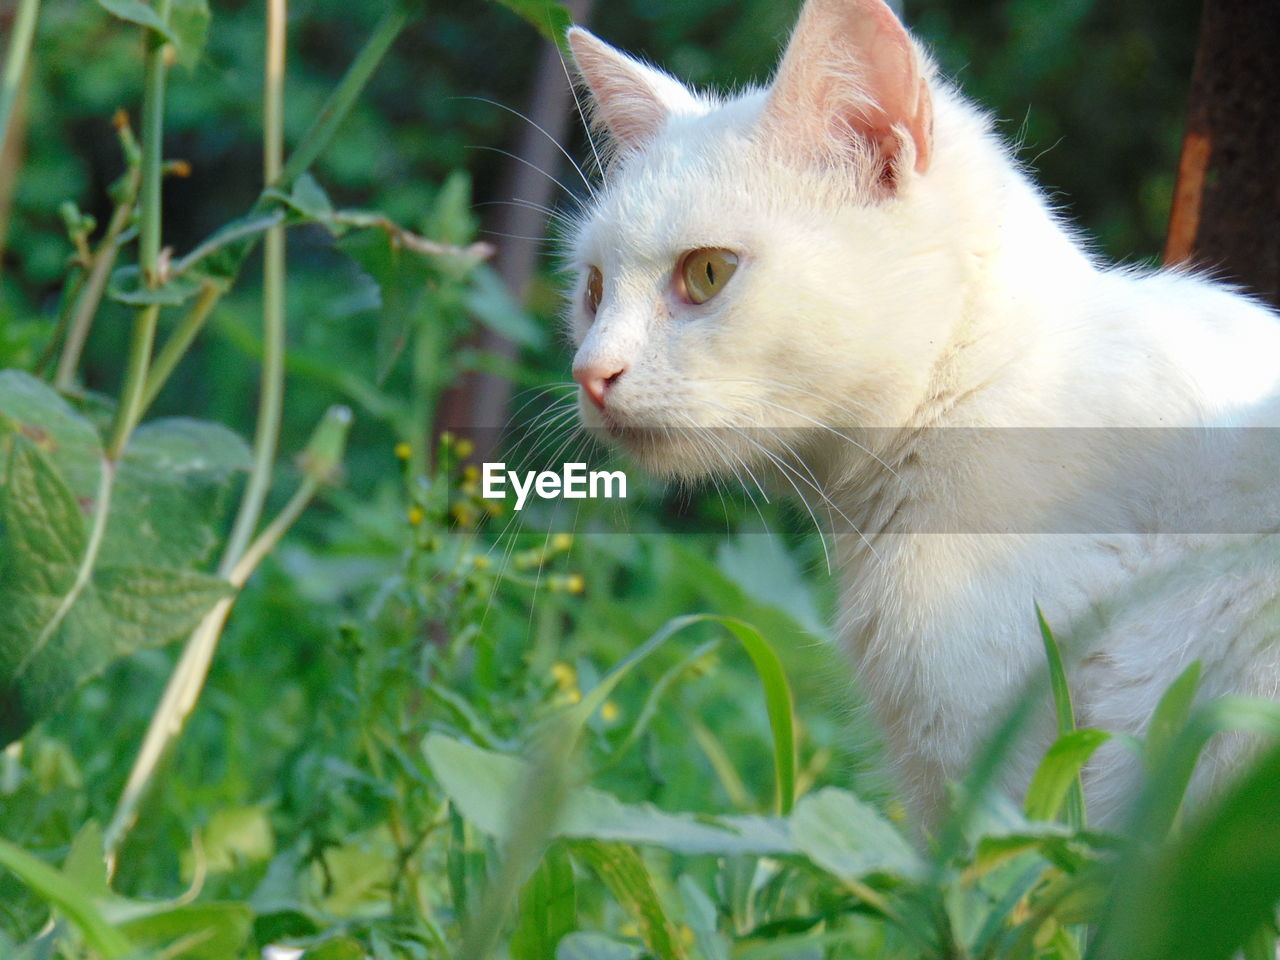 animal themes, animal, mammal, one animal, pets, domestic, domestic animals, domestic cat, vertebrate, cat, feline, plant, whisker, close-up, plant part, looking, leaf, no people, looking away, nature, animal head, outdoors, profile view